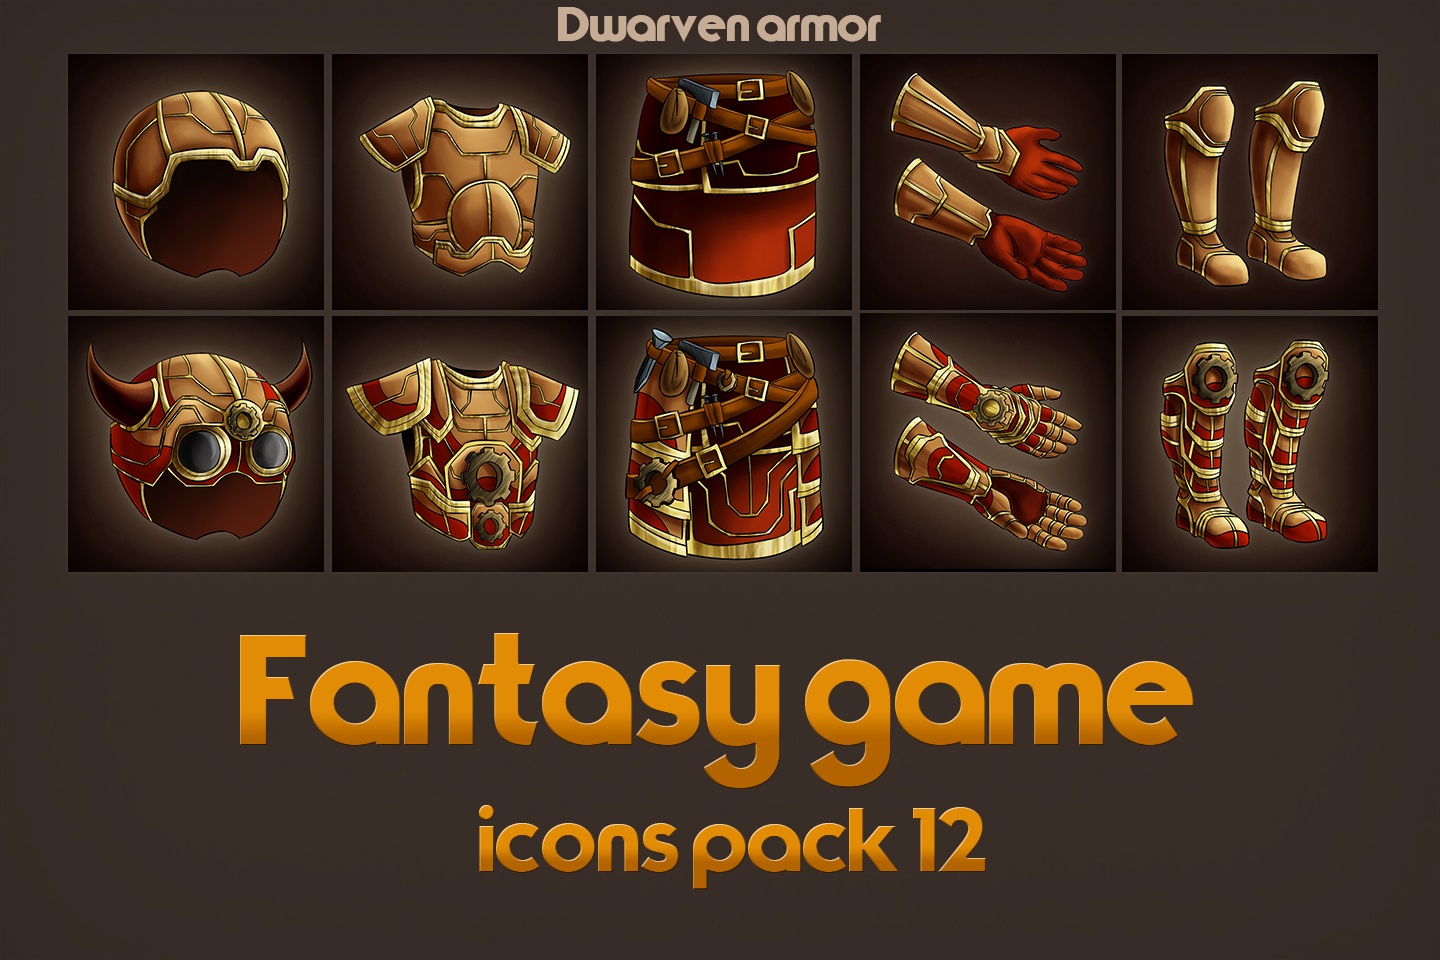 Game Icons of Fantasy Dwarven Armor – Pack 12